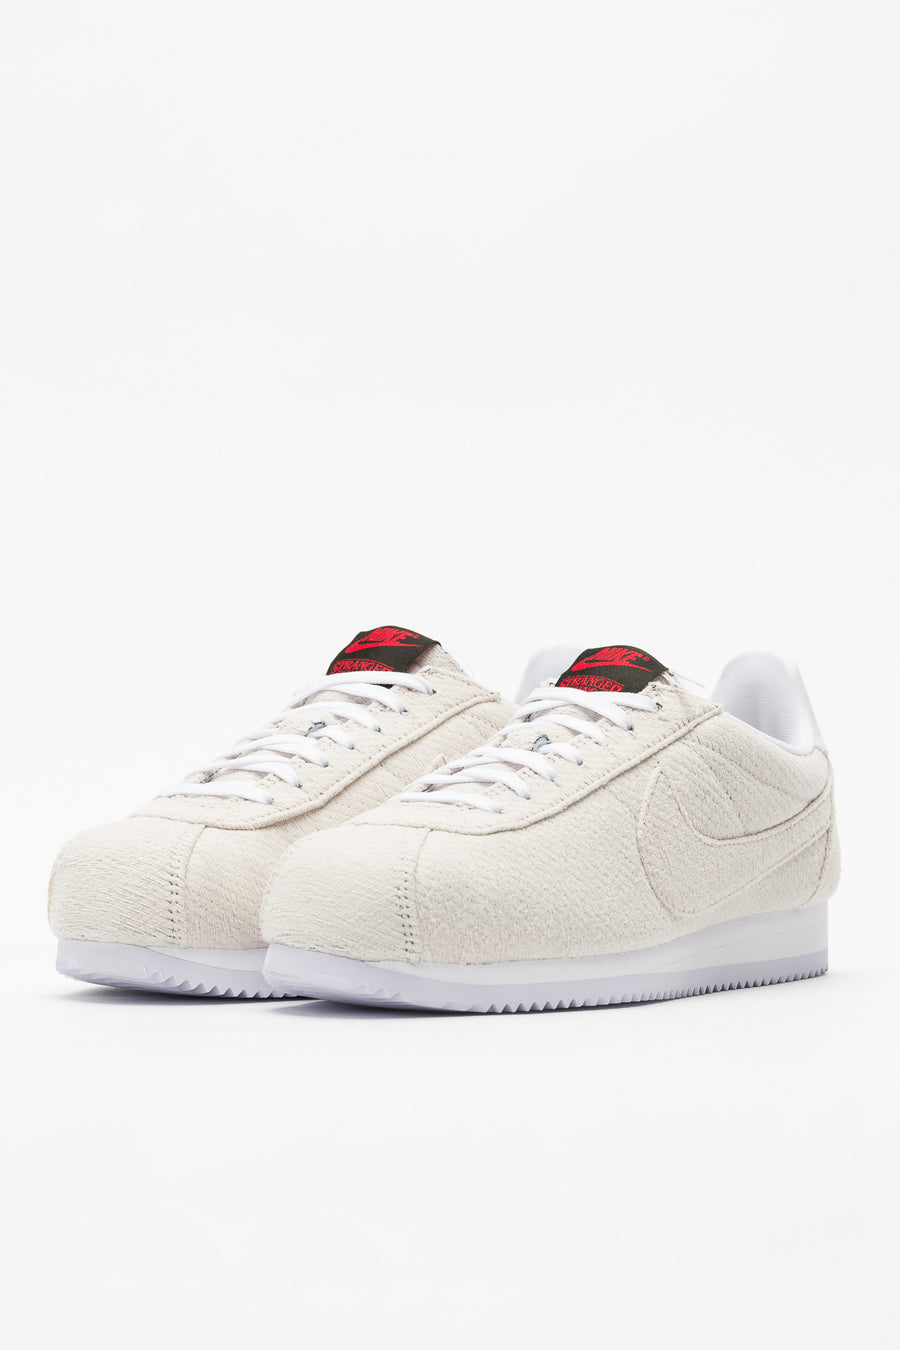 Nike Classic Cortez QS UD in Sail - Notre